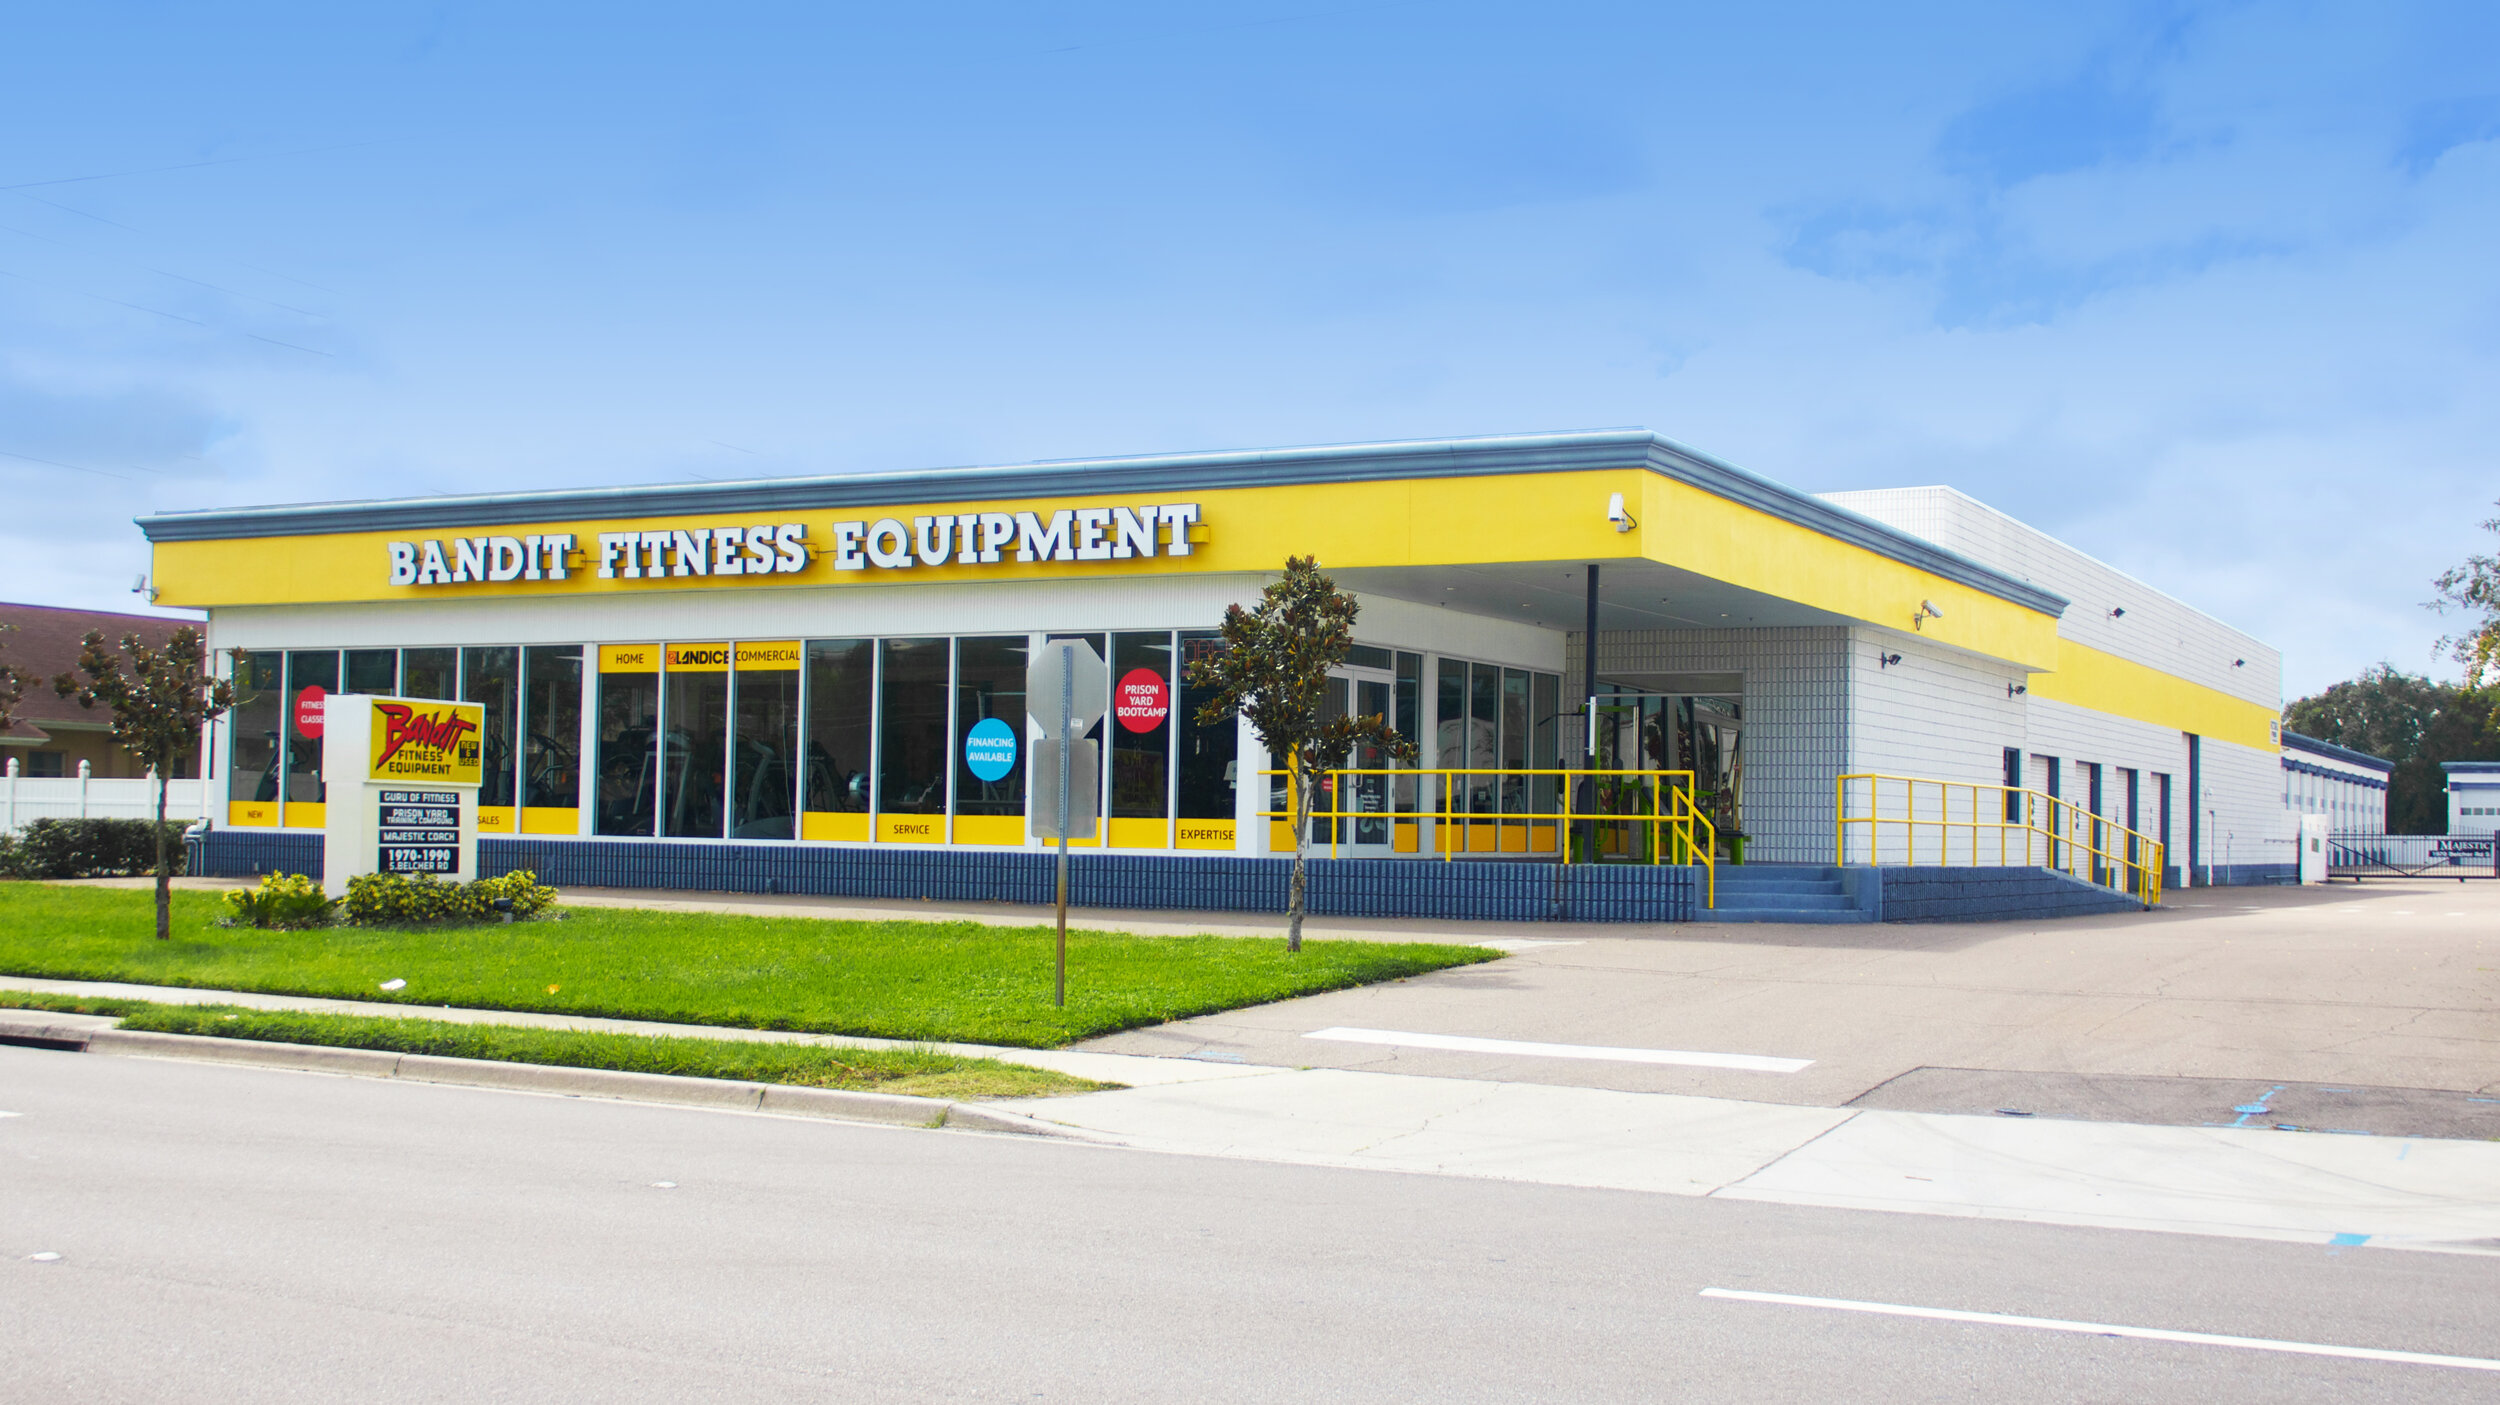 Visit our store! - Check out our showroom and warehouse and see all the many ways it's better to shop small and lean on the experience of a 28 year old company.